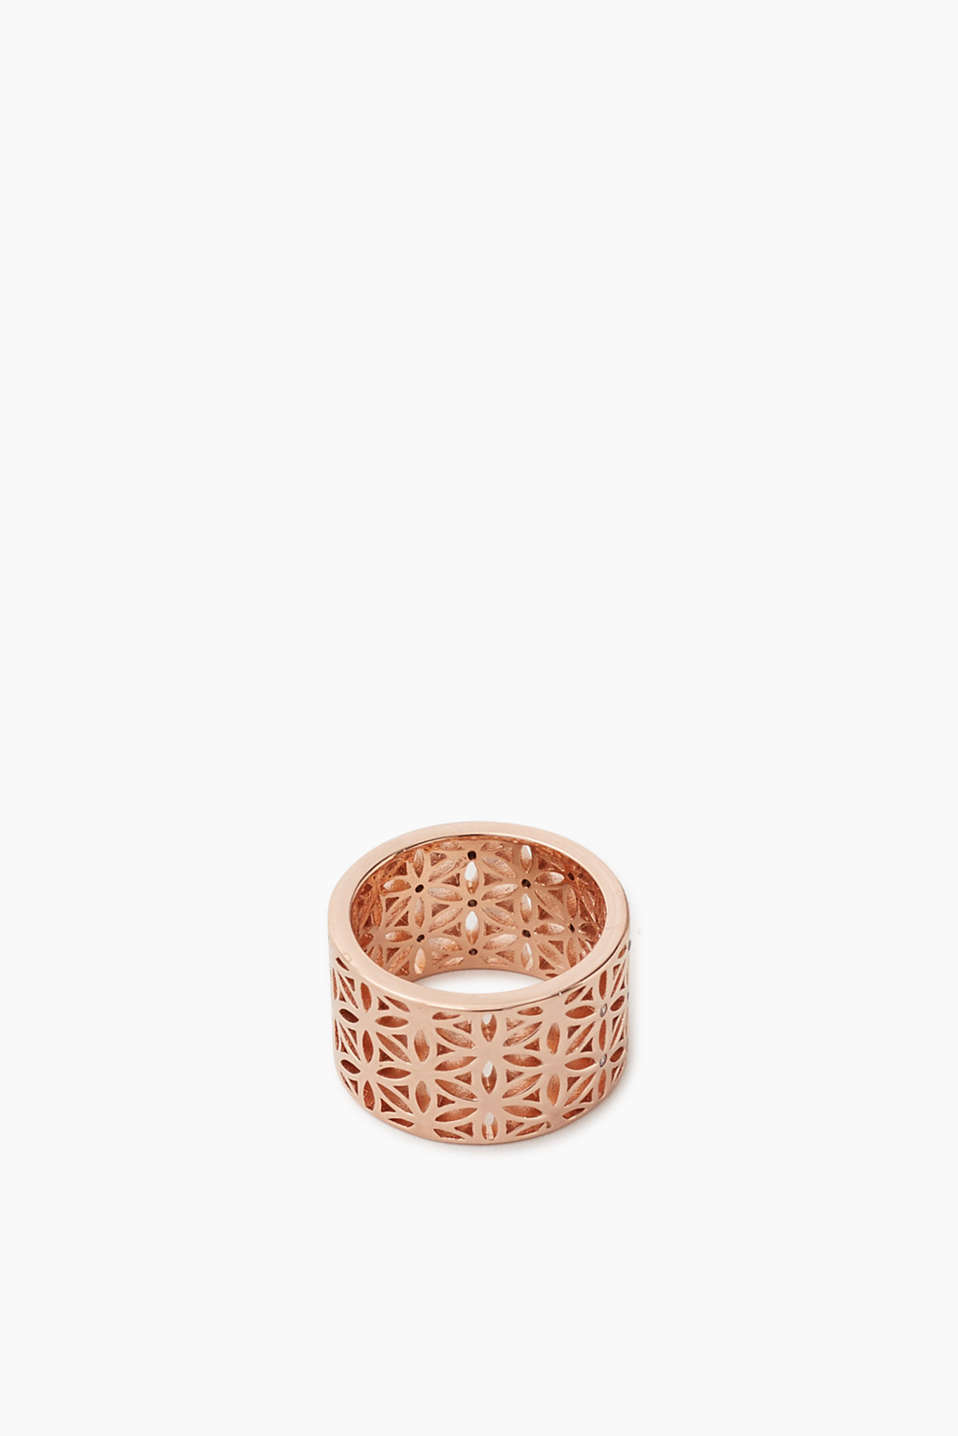 Esprit - Gold-plated metal ring with zirconia stones